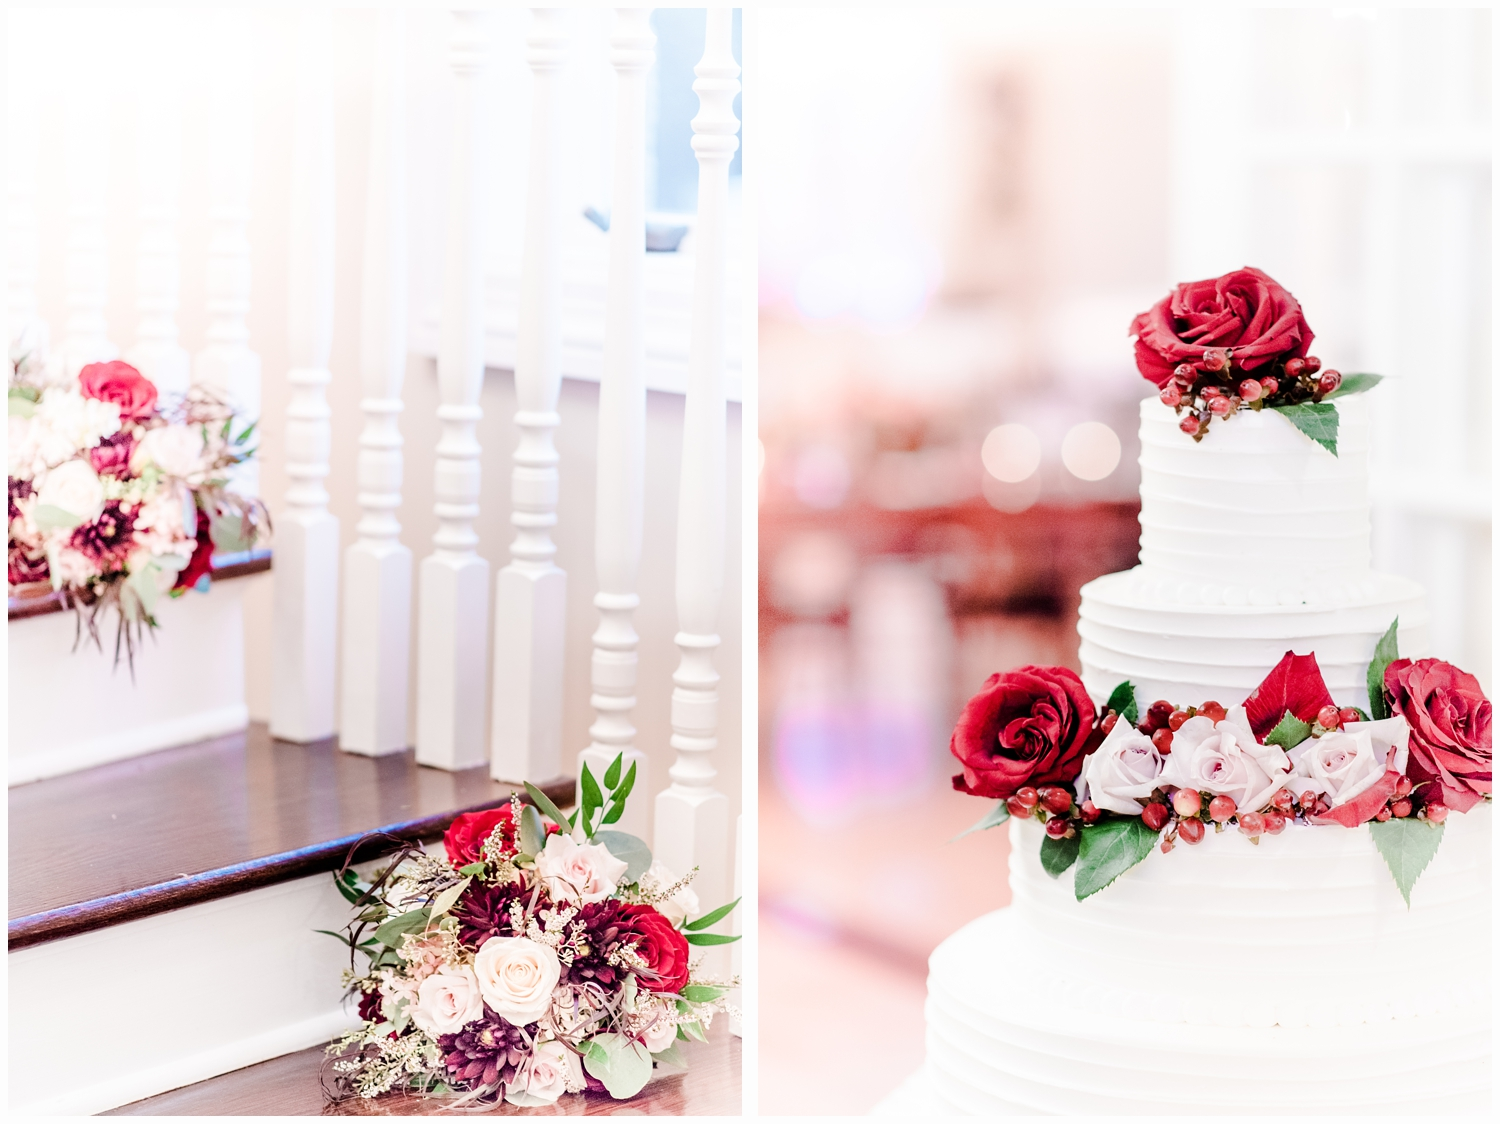 wedding cake and bouquets